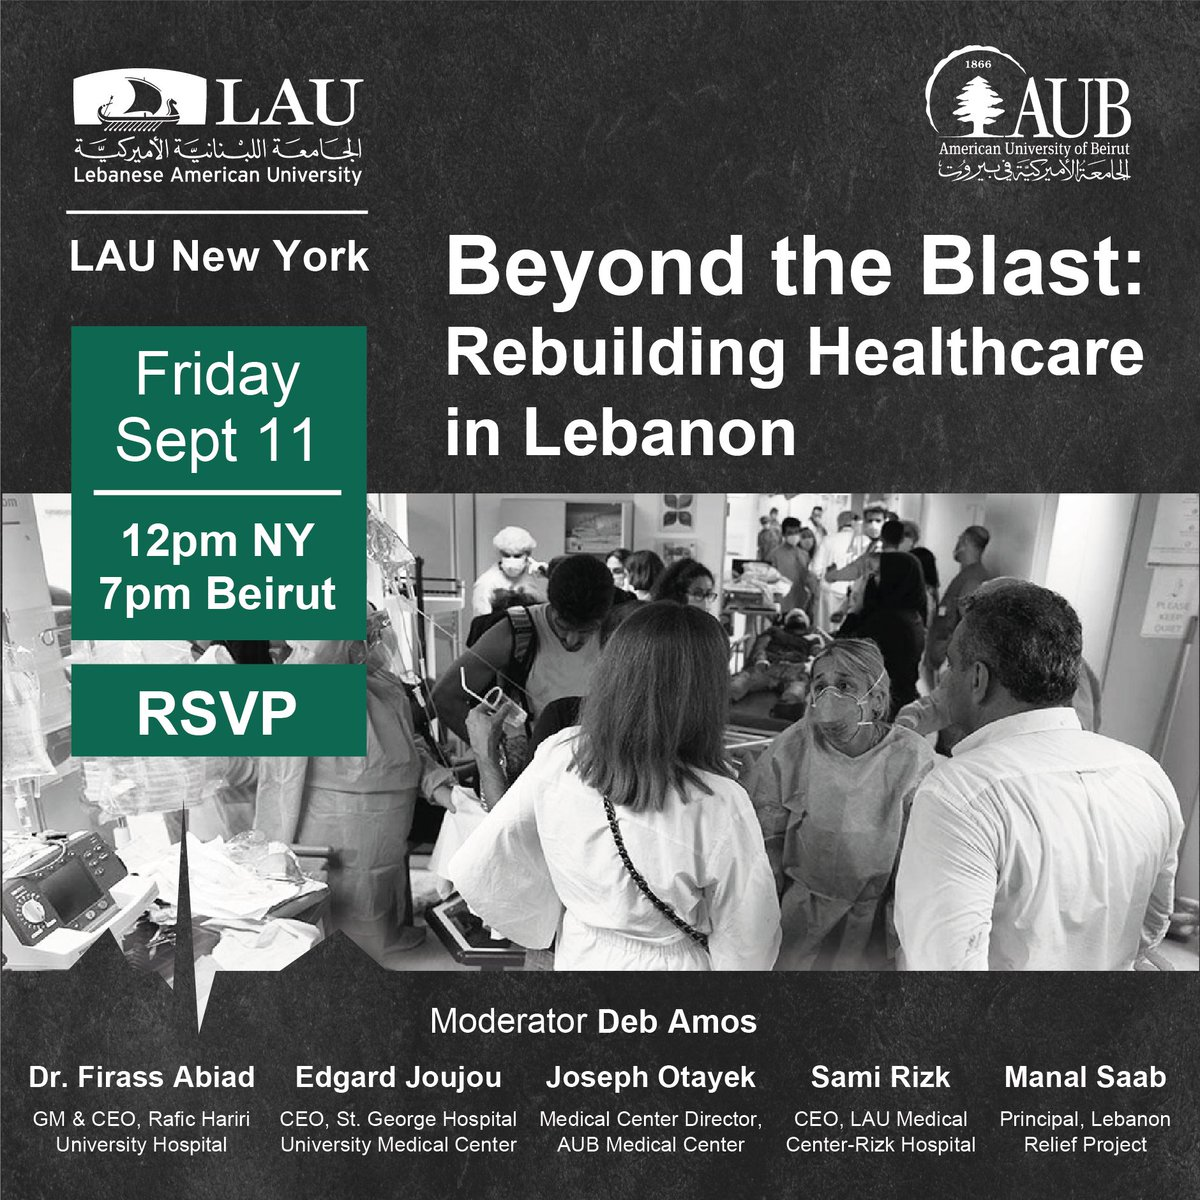 """Beyond The Blast: Rebuilding Healthcare in Lebanon"" w/ Dr. @firassabiad, CEO, #RHUH, Edgard Joujou, CEO, @saintgeorgehosp, @JOtayek, Dir., @AUBMC_Official, Sami Rizk, CEO, @LAUMCRH, and @mb_saab, Prin., Lebanon Relief Project. MC: @deborahamos https://t.co/lCmu6Bb4lB https://t.co/VPwCMMBz9Y"